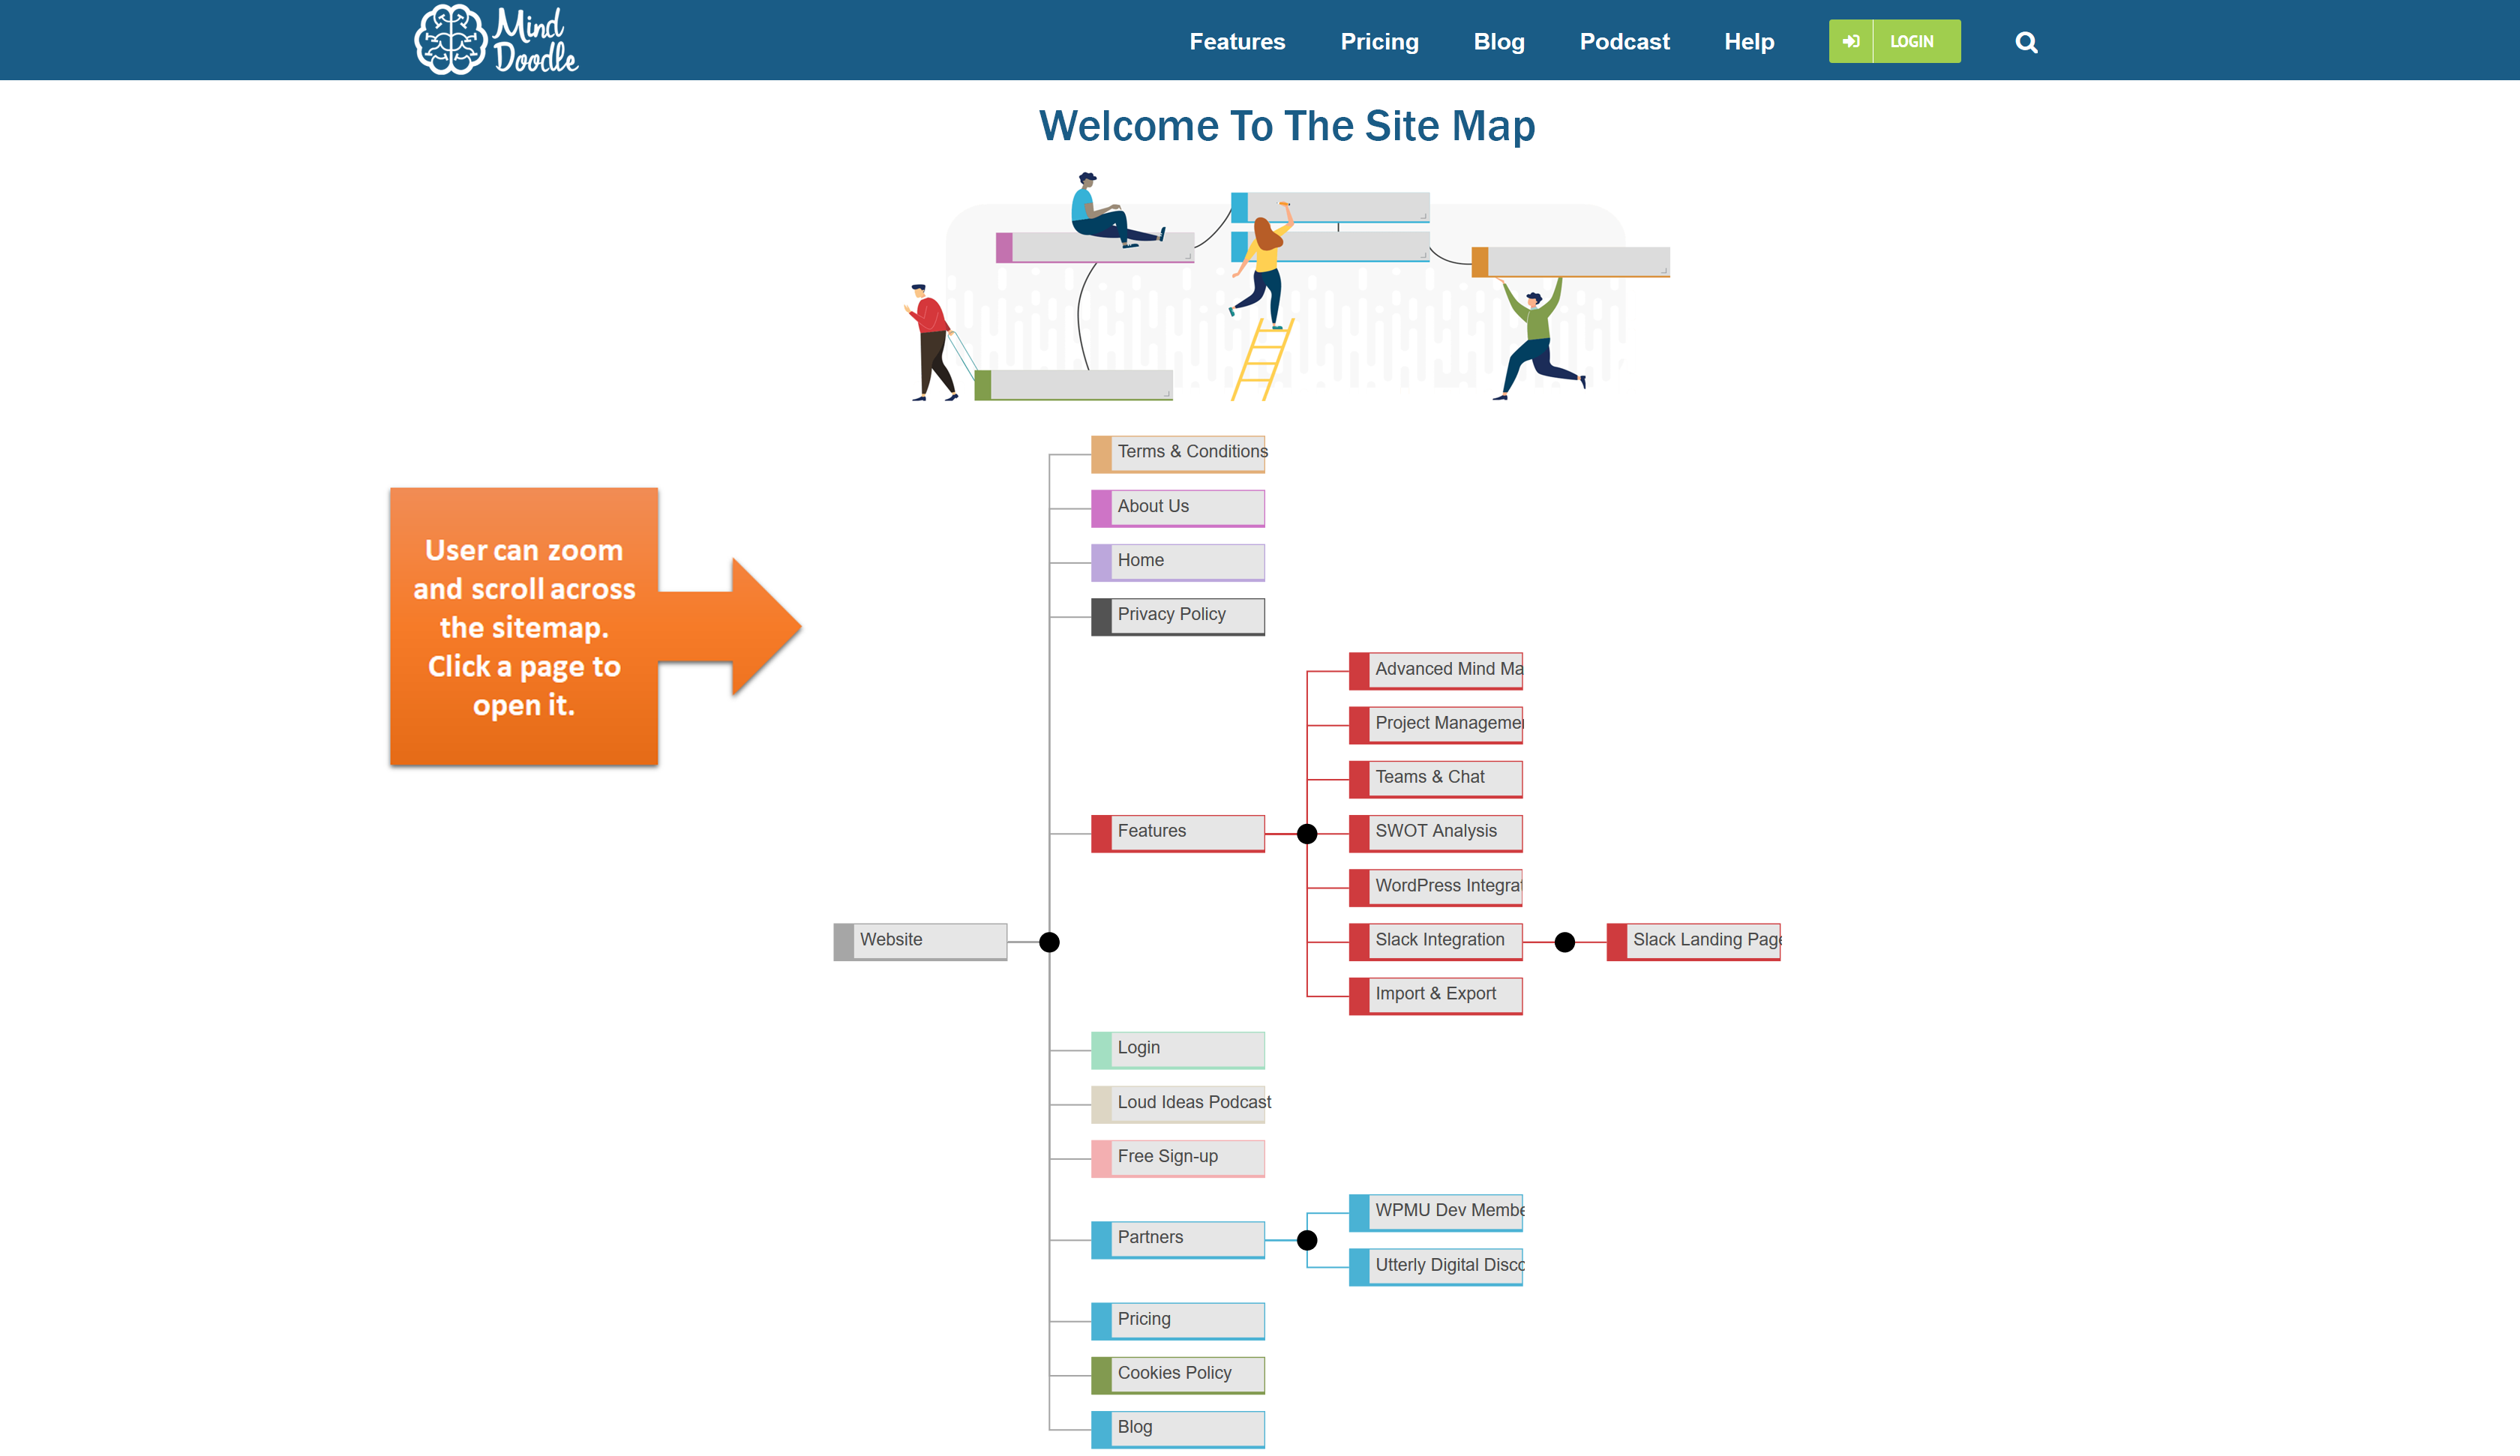 This screenshot shows how the visual sitemap widget appears within a web-page to allow easy website navigation for visitors.